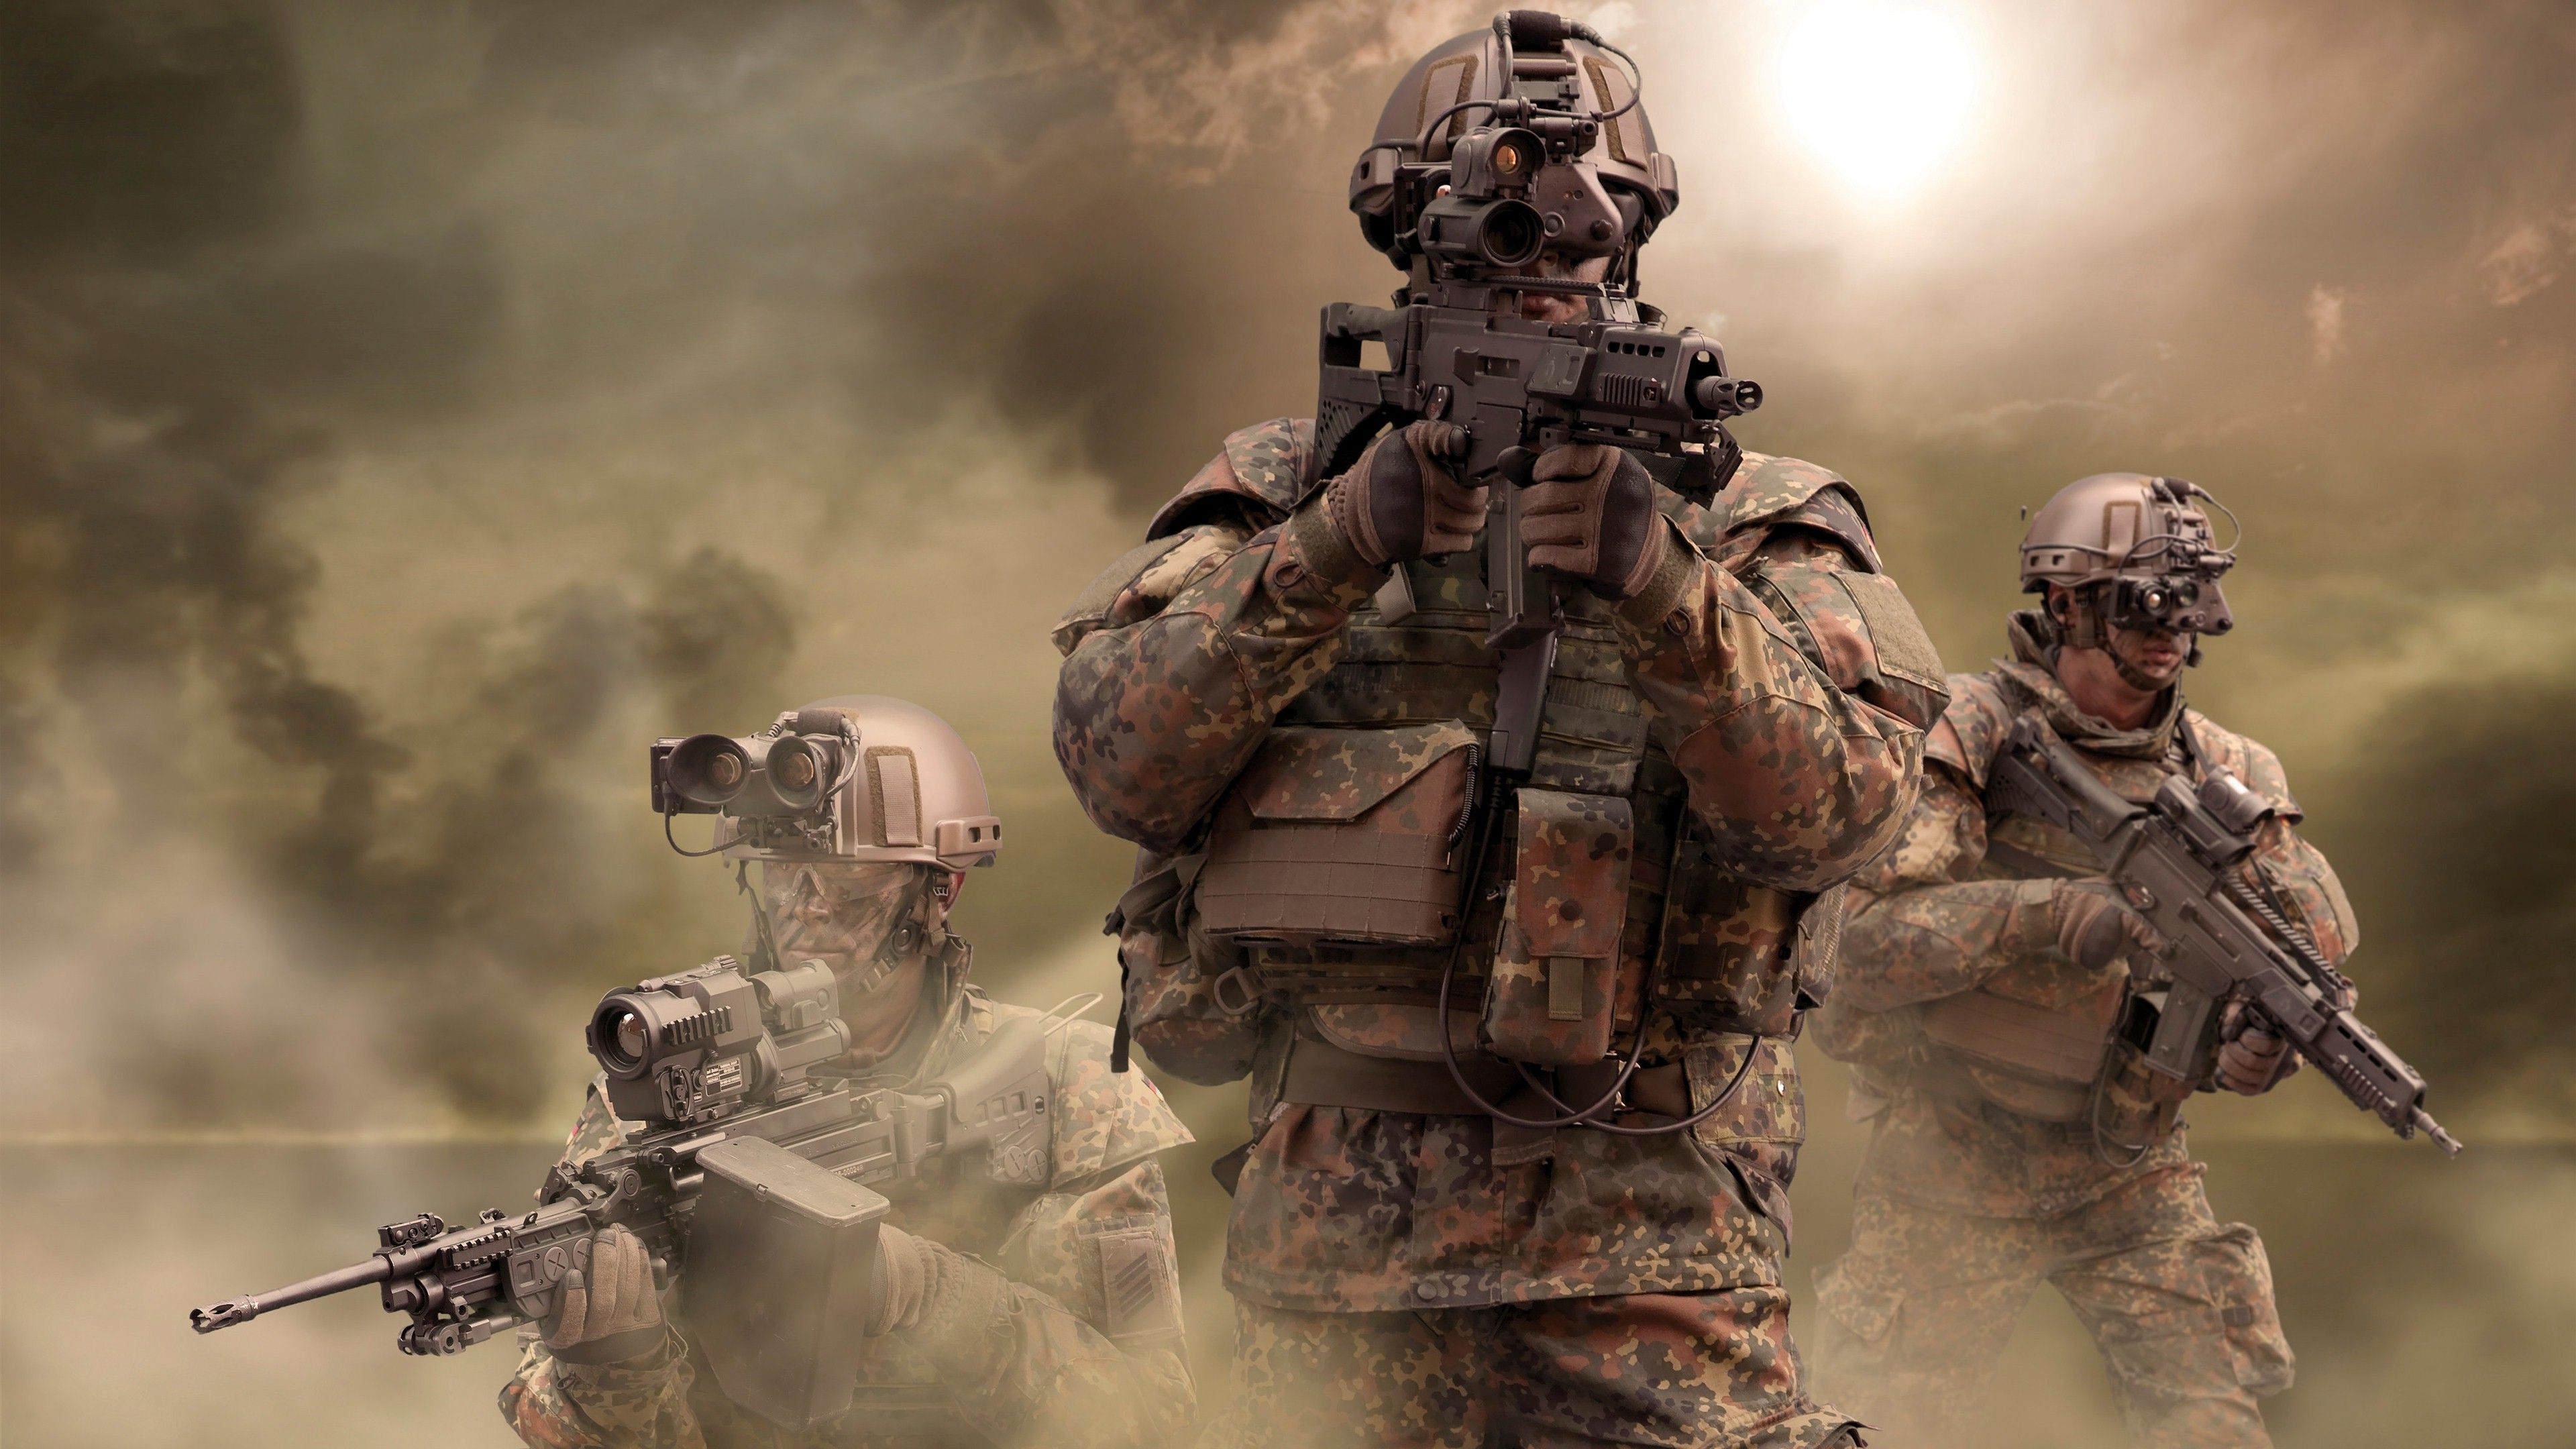 Army Wallpapers   Top Army Backgrounds   WallpaperAccess 3840x2160